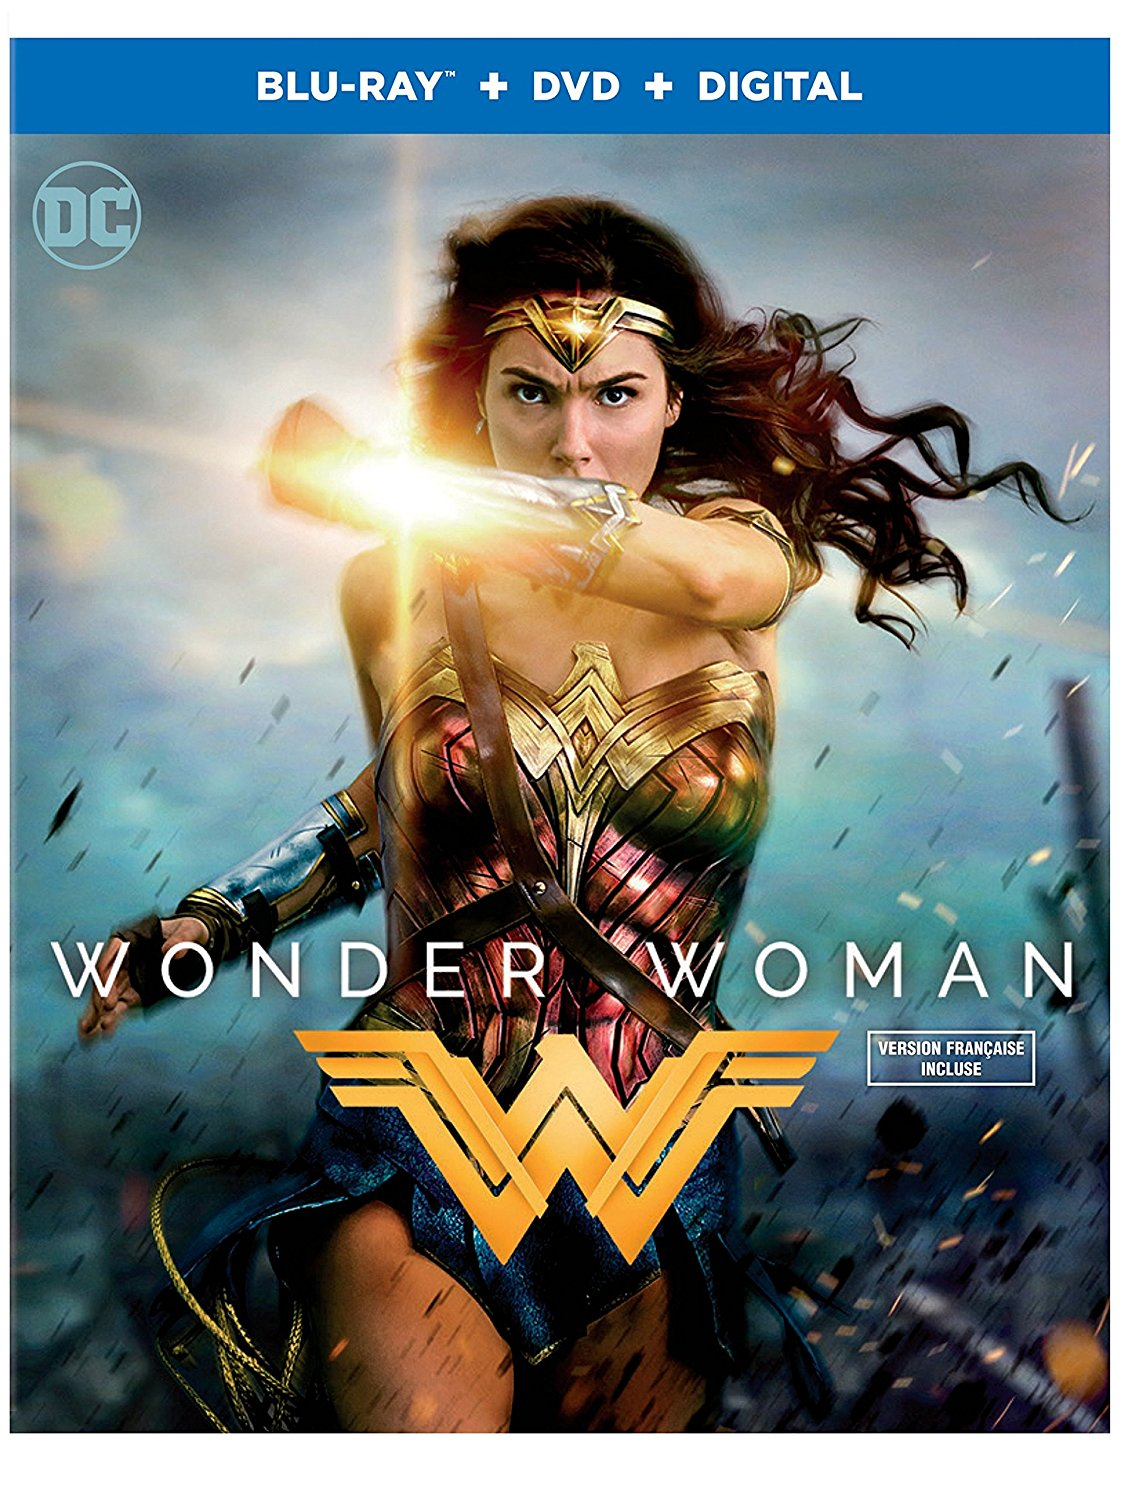 Wonder Woman on Blu-ray, DVD and Digital HD